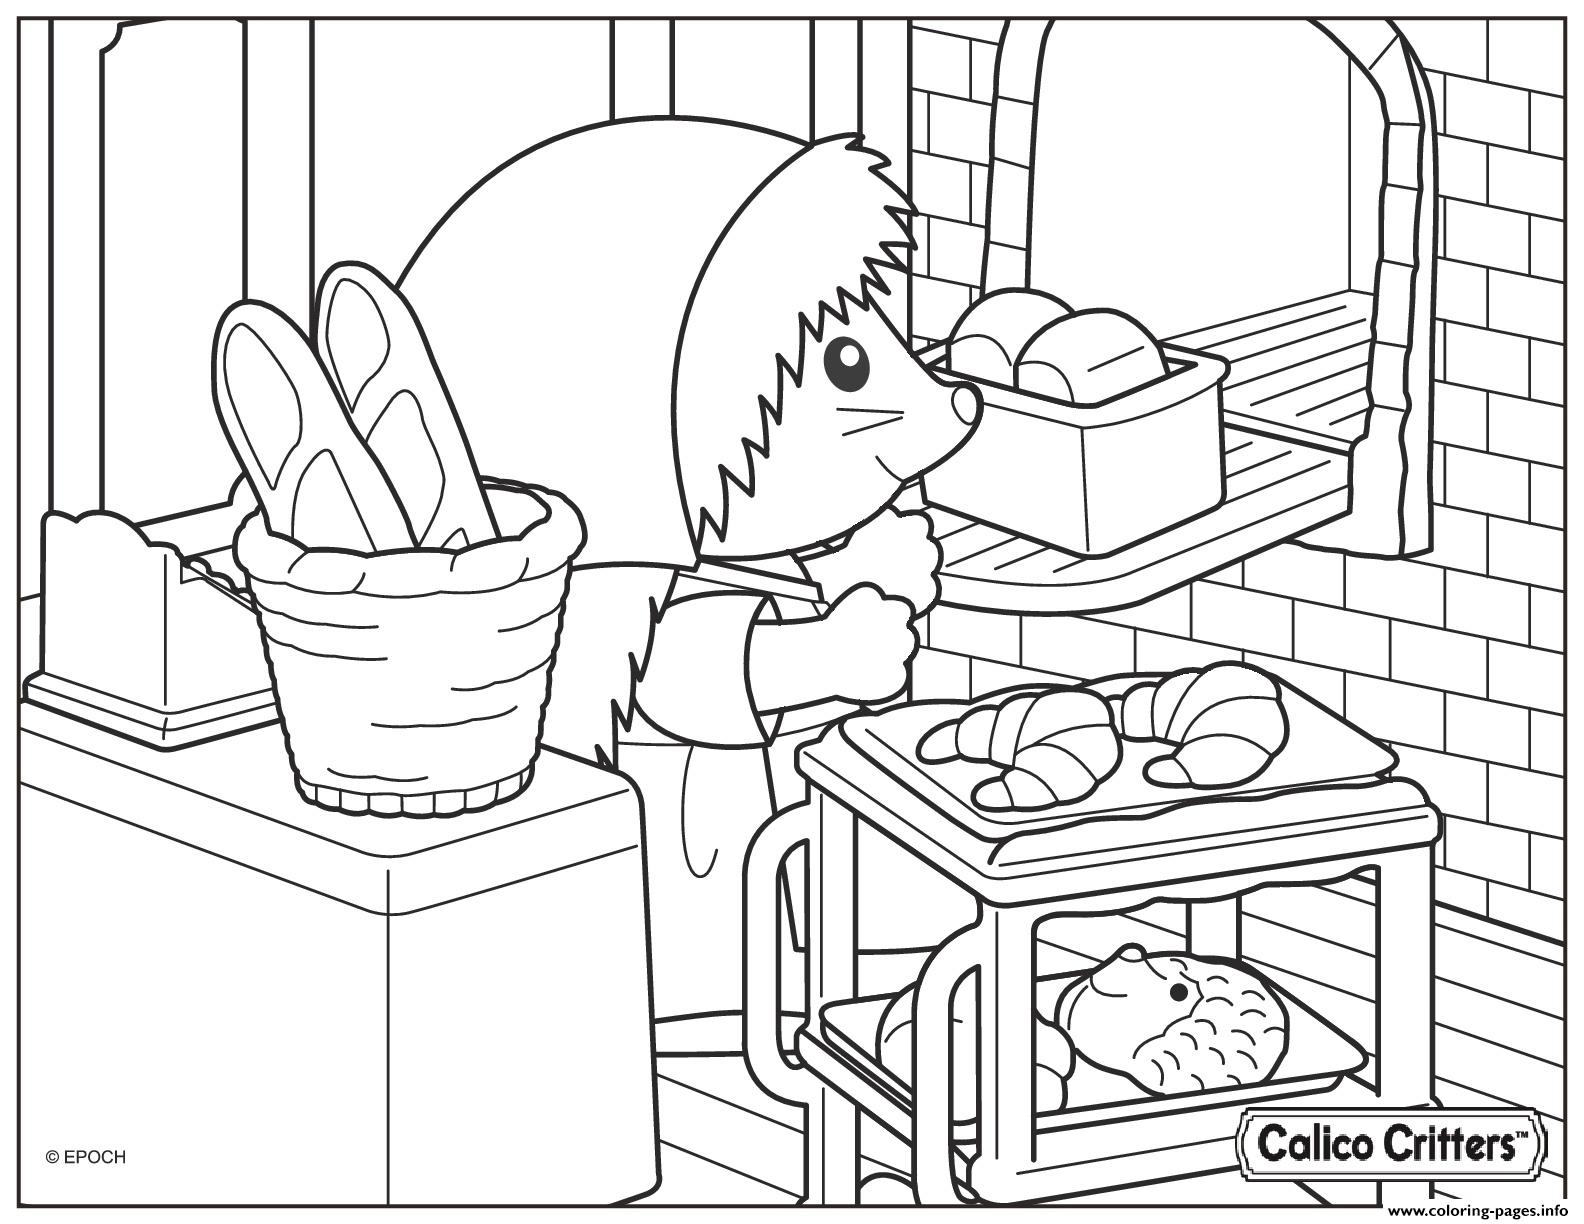 Calico critters cooking croissant bread coloring pages for Little critter coloring pages